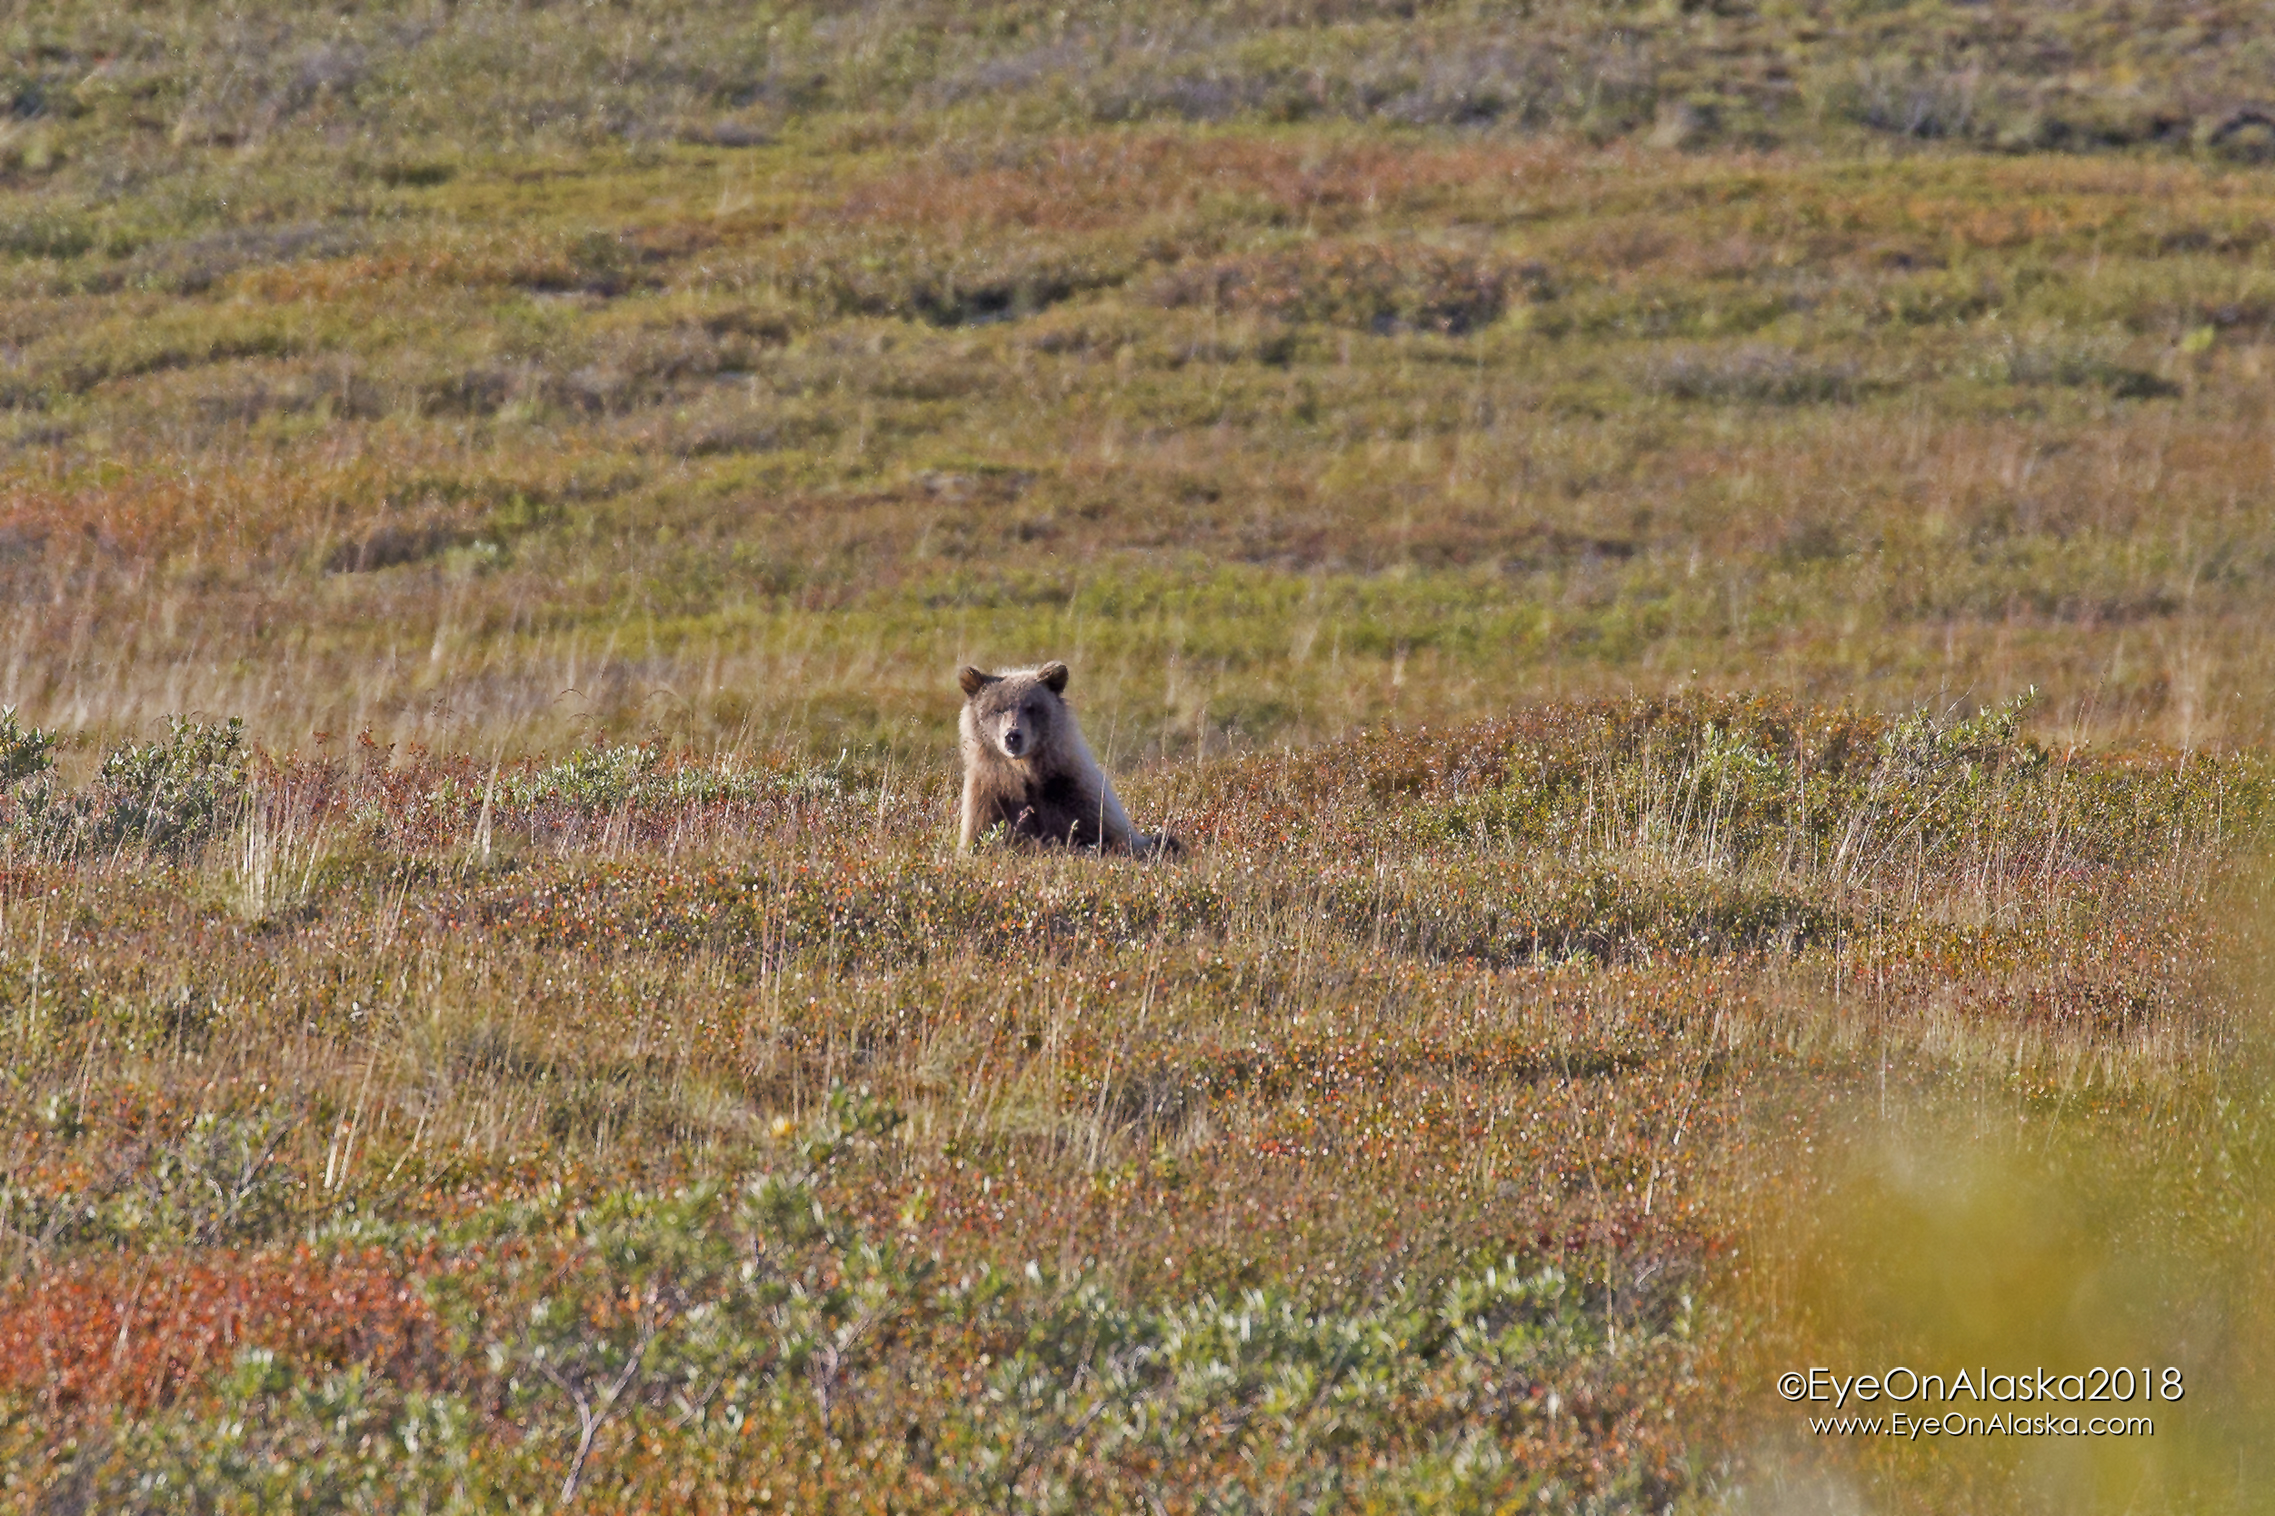 Our friends joined us with their bikes and we headed towards Igloo Canyon and the campground.  Not more than 200 yards down the road I looked up just as this cub popped up out of the berry patch!  He was no more than 100 yards from us.  Way too close!